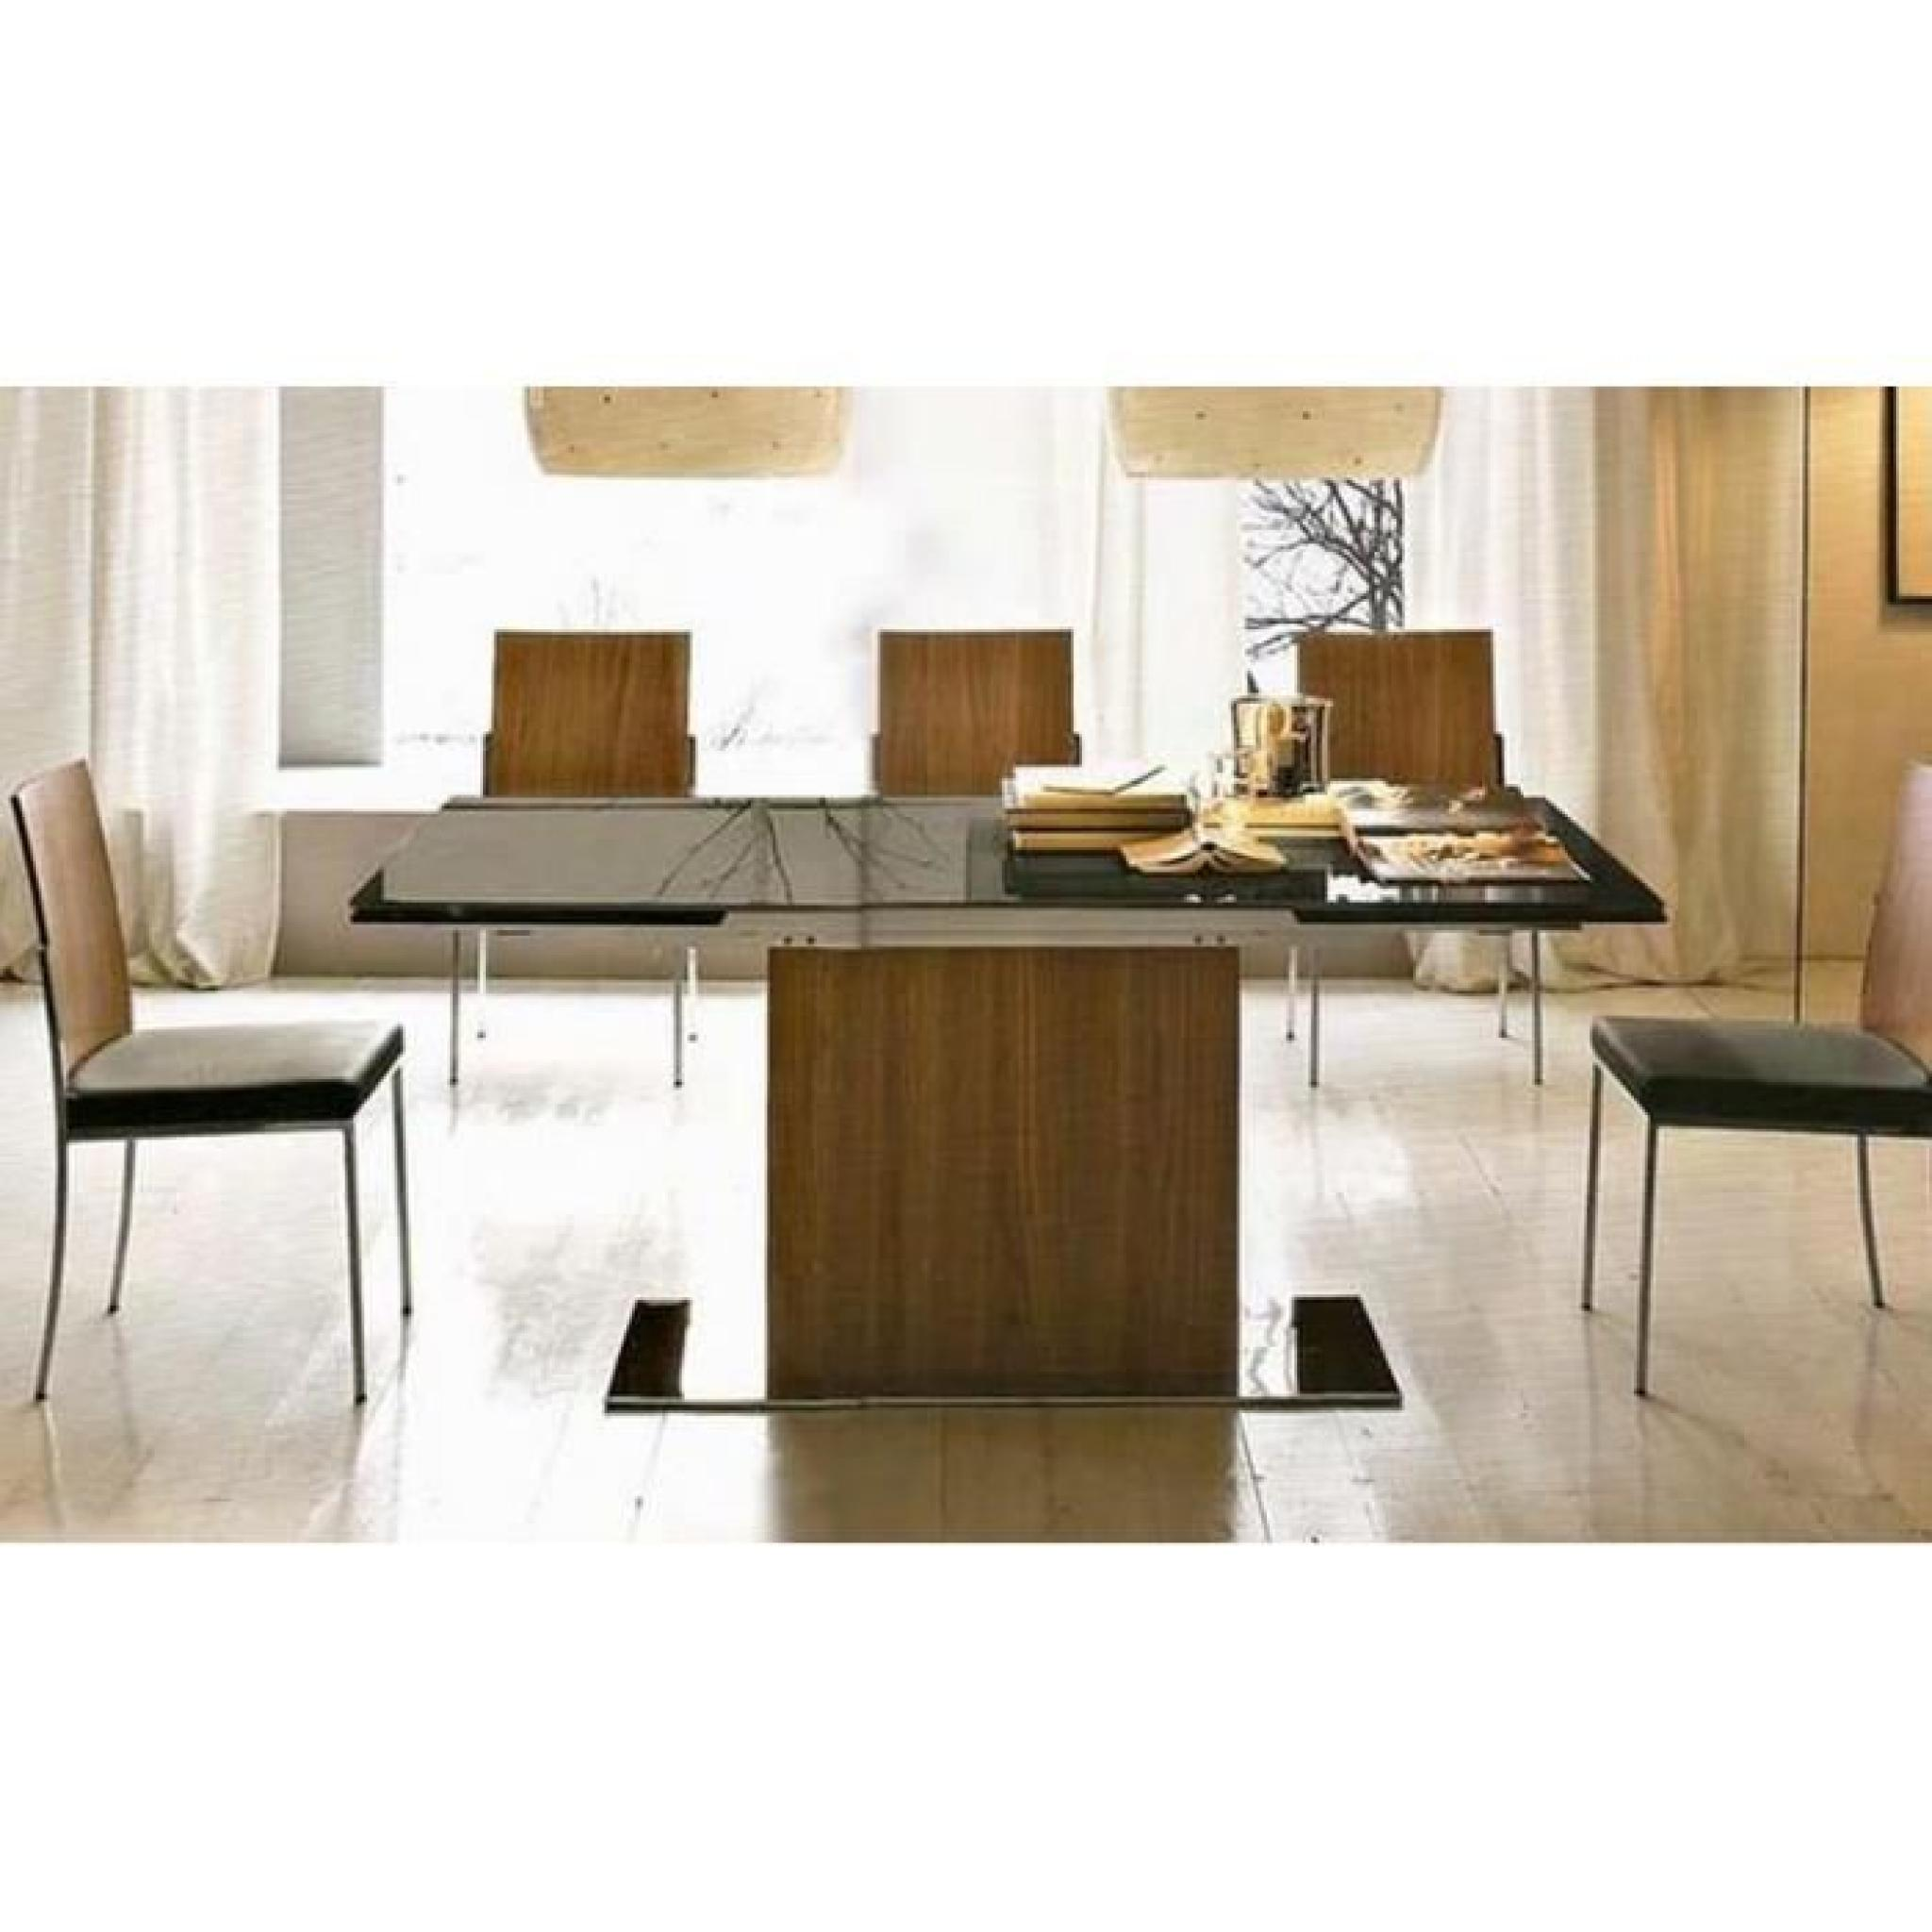 park table repas extensible haut de gamme 180x100 en verre noir de calligaris achat vente. Black Bedroom Furniture Sets. Home Design Ideas